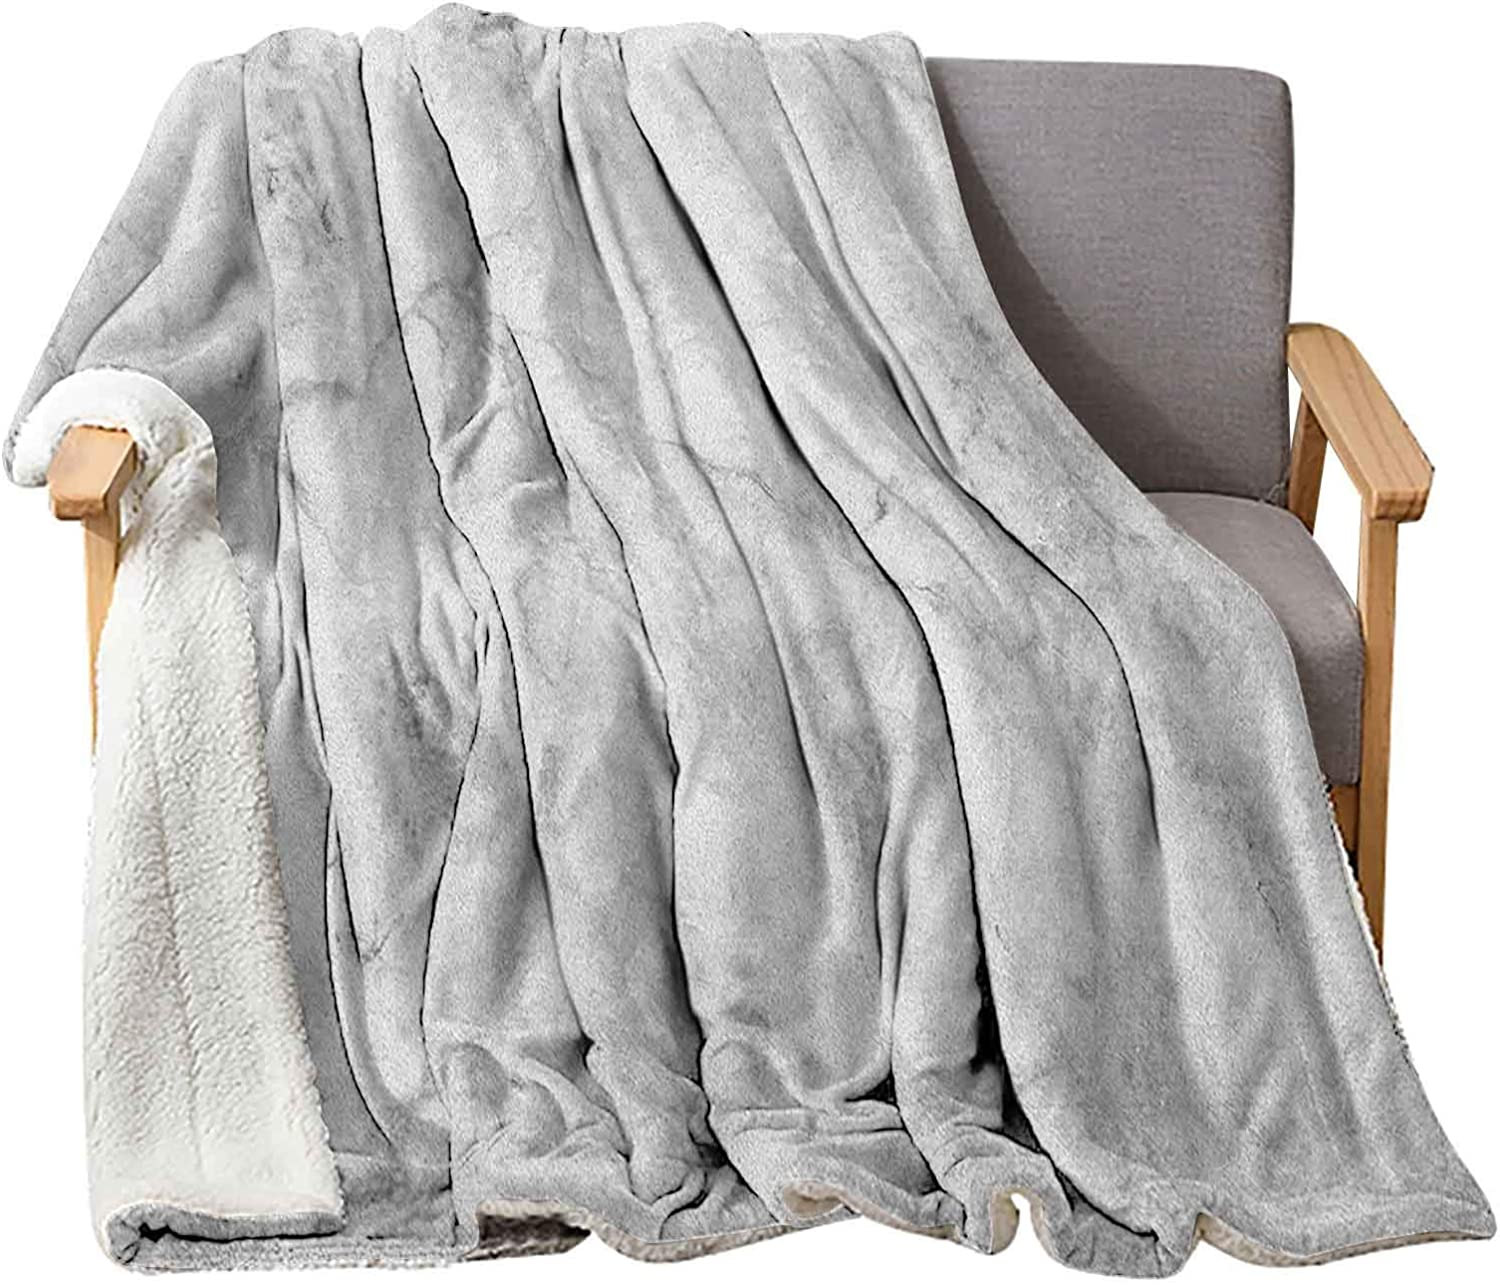 Interestlee Marble 通常便なら送料無料 Throw Blanket for Bed x ギフト プレゼント ご褒美 60